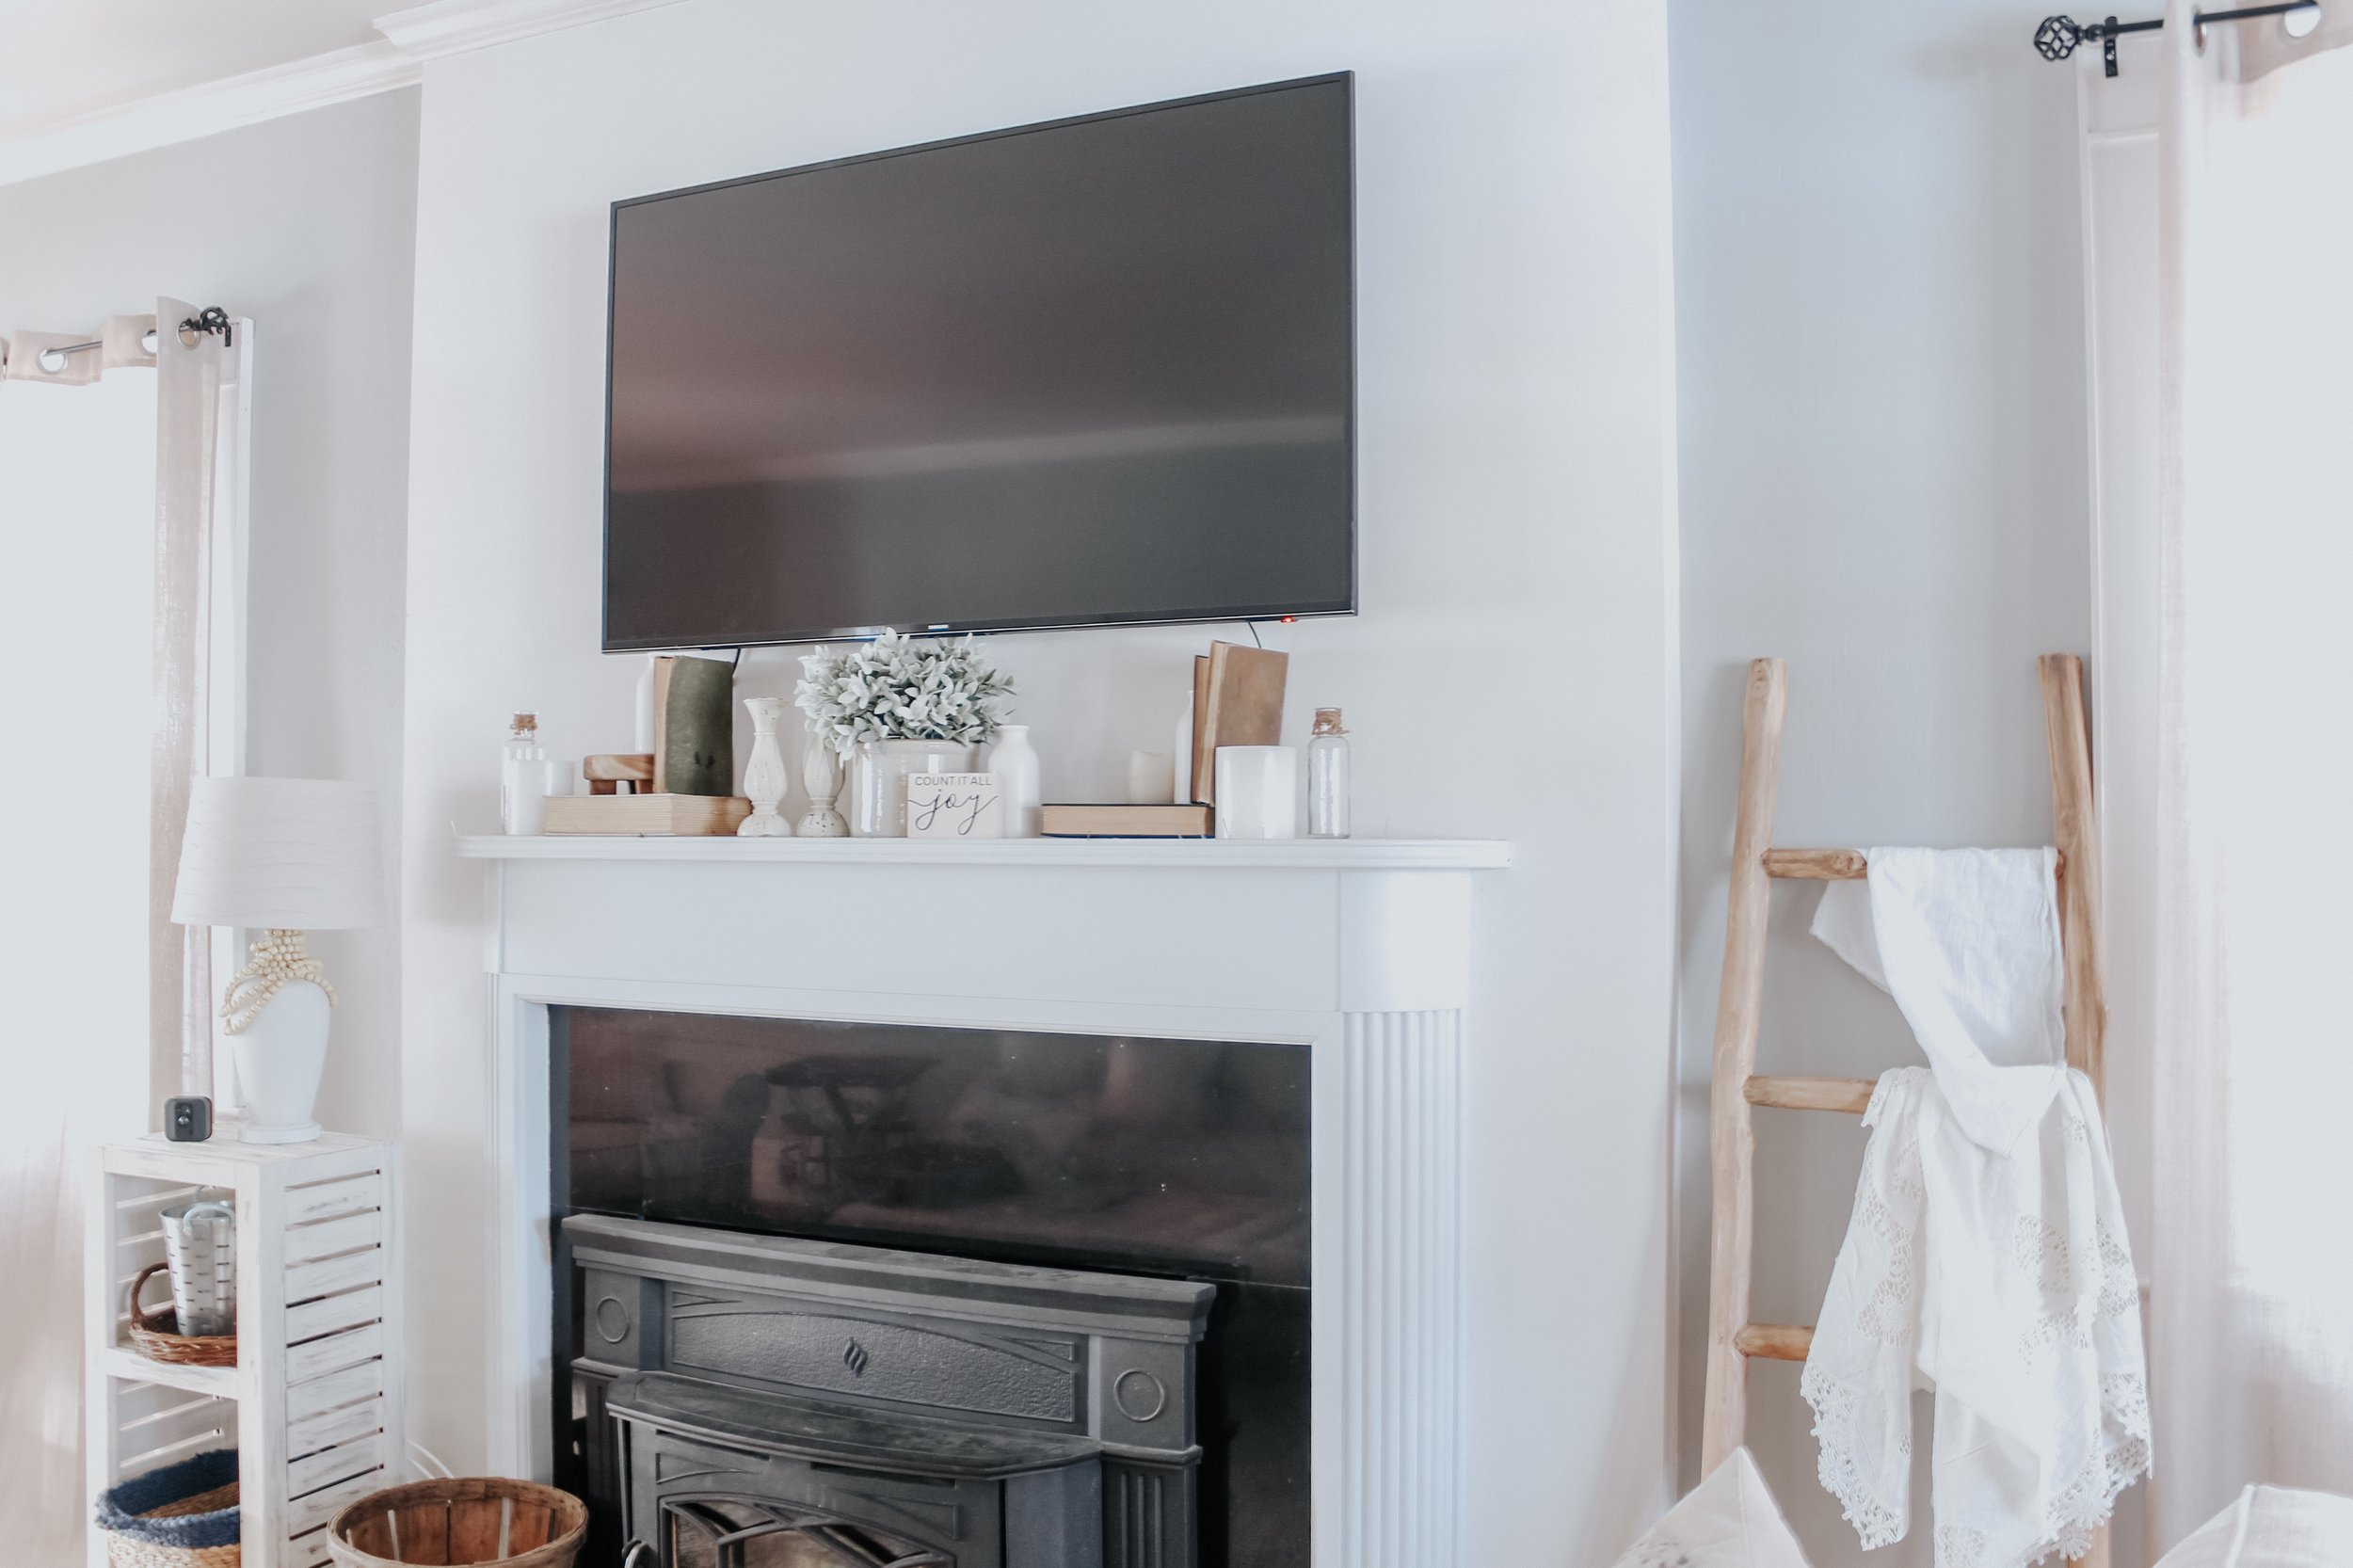 Fireplace decor in the living room